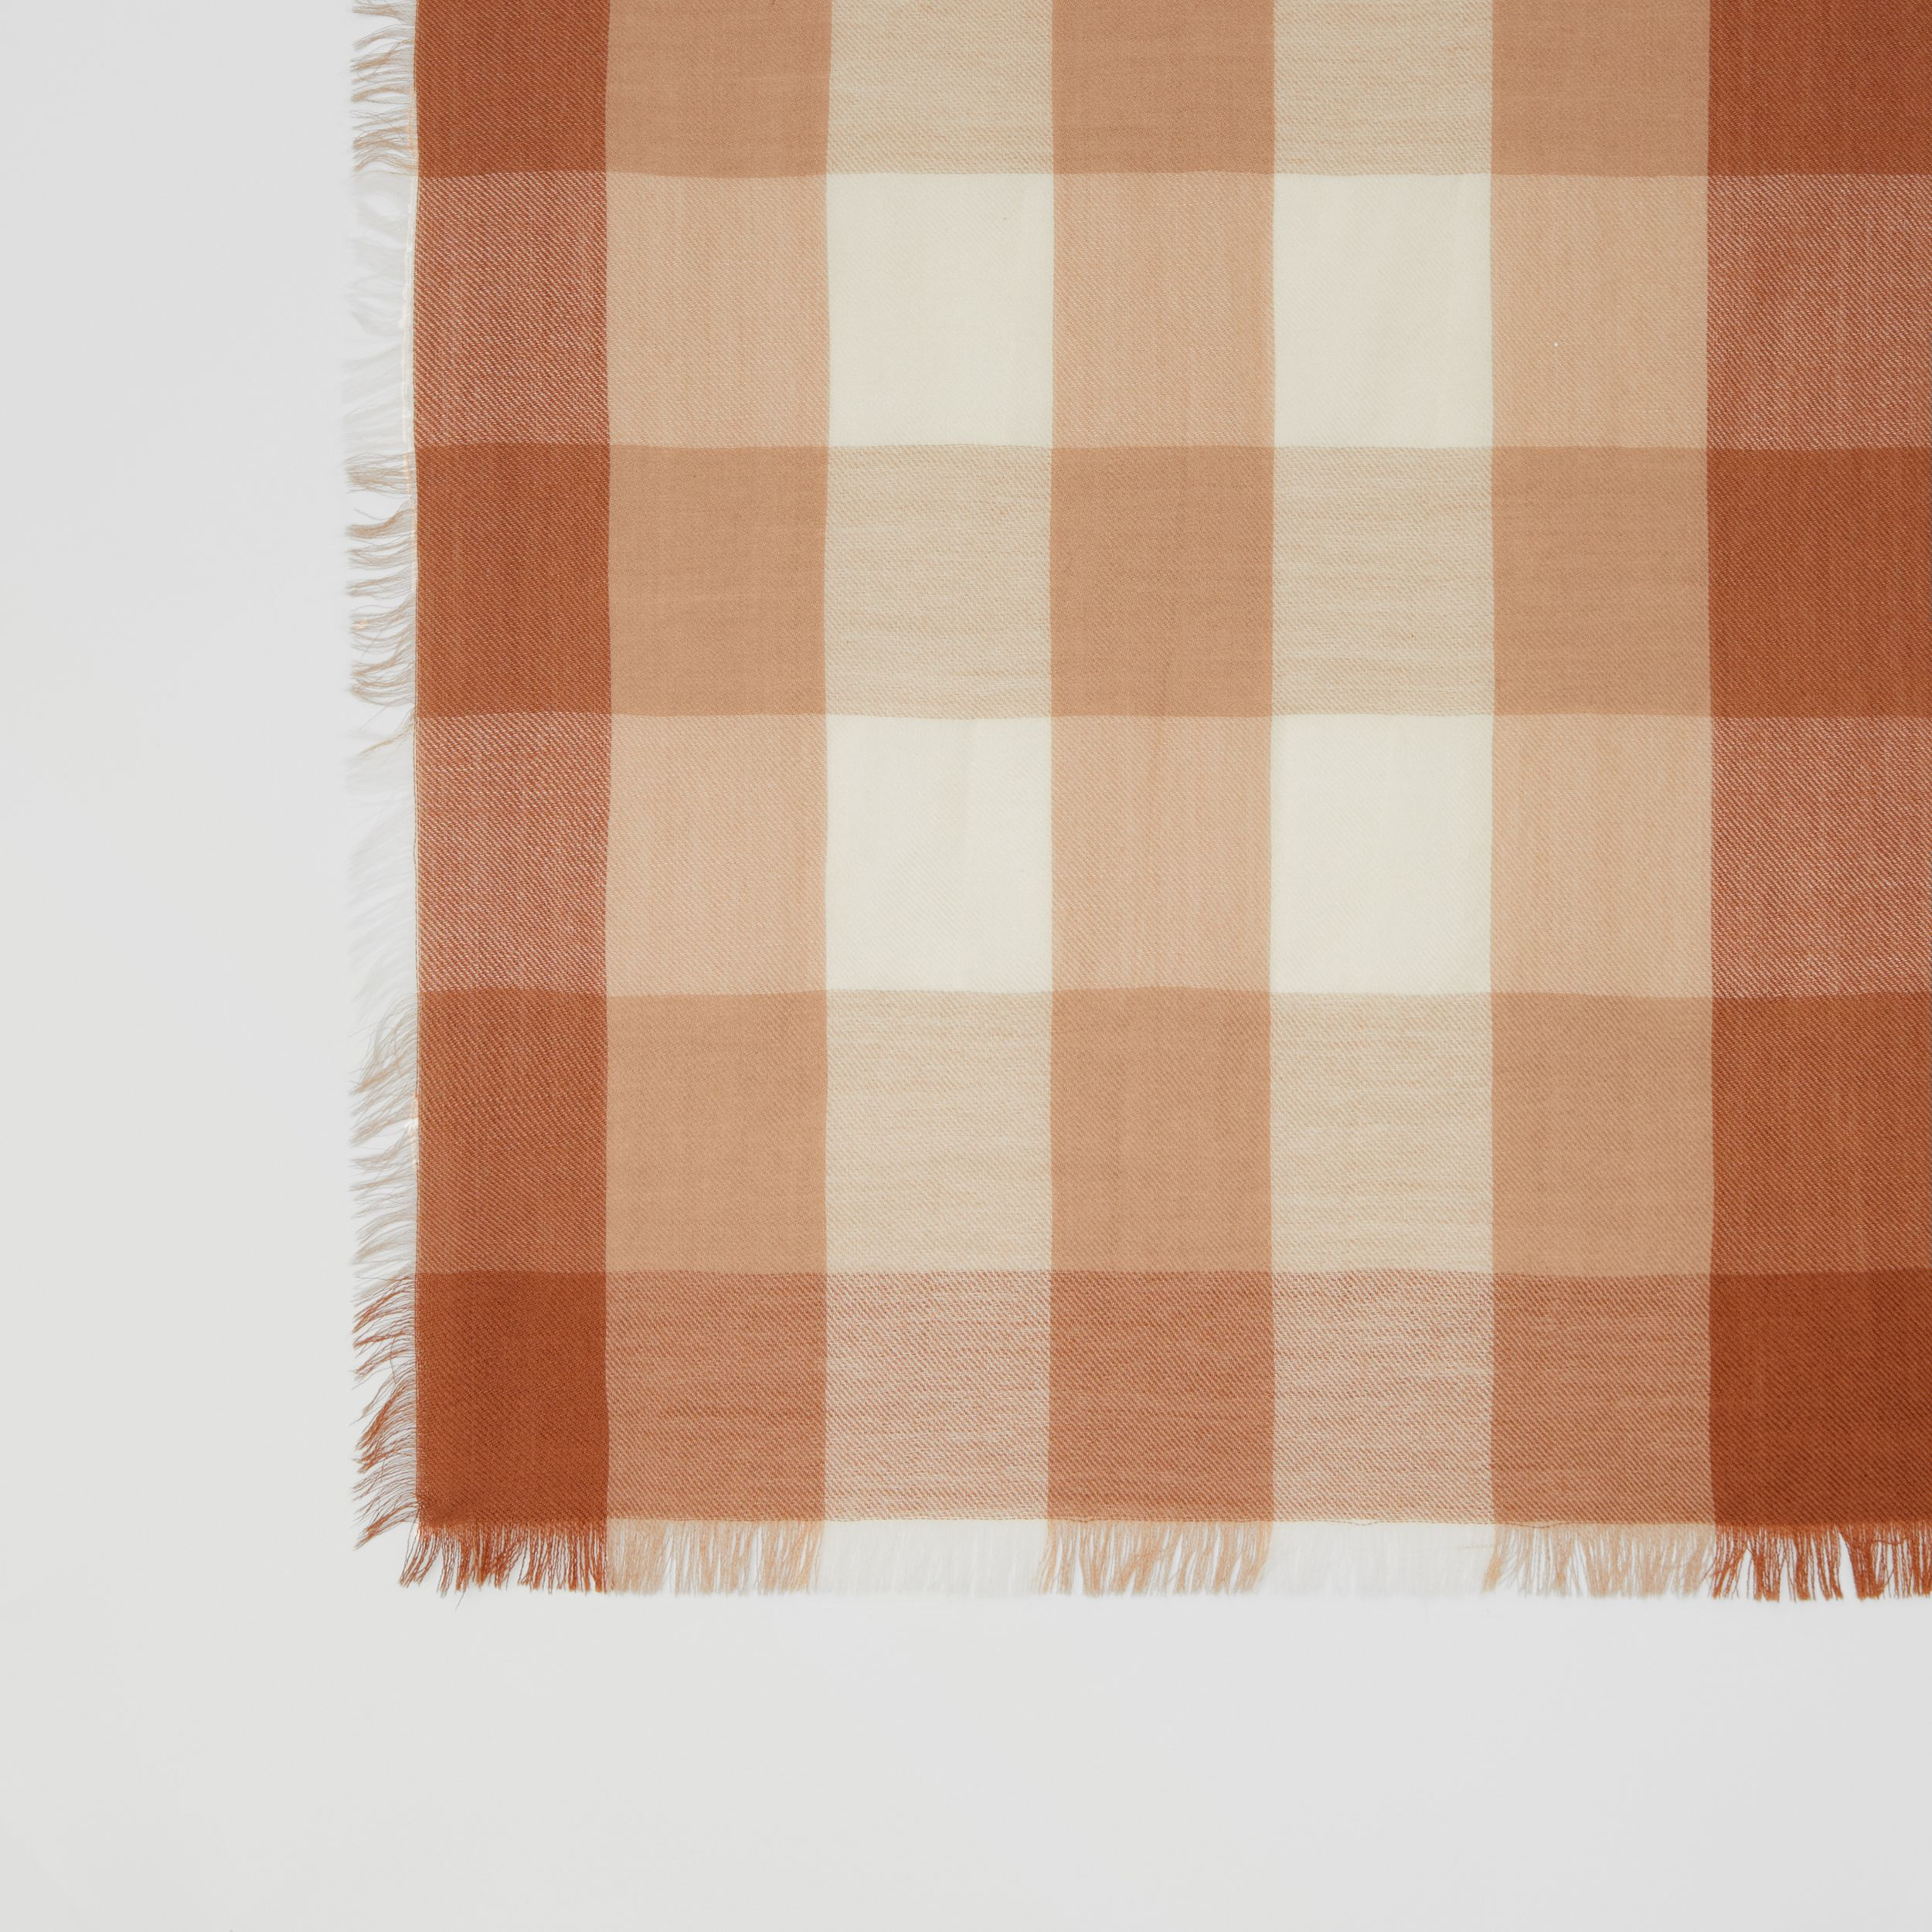 Lightweight Check Cashmere Scarf in Dark Camel | Burberry - 2